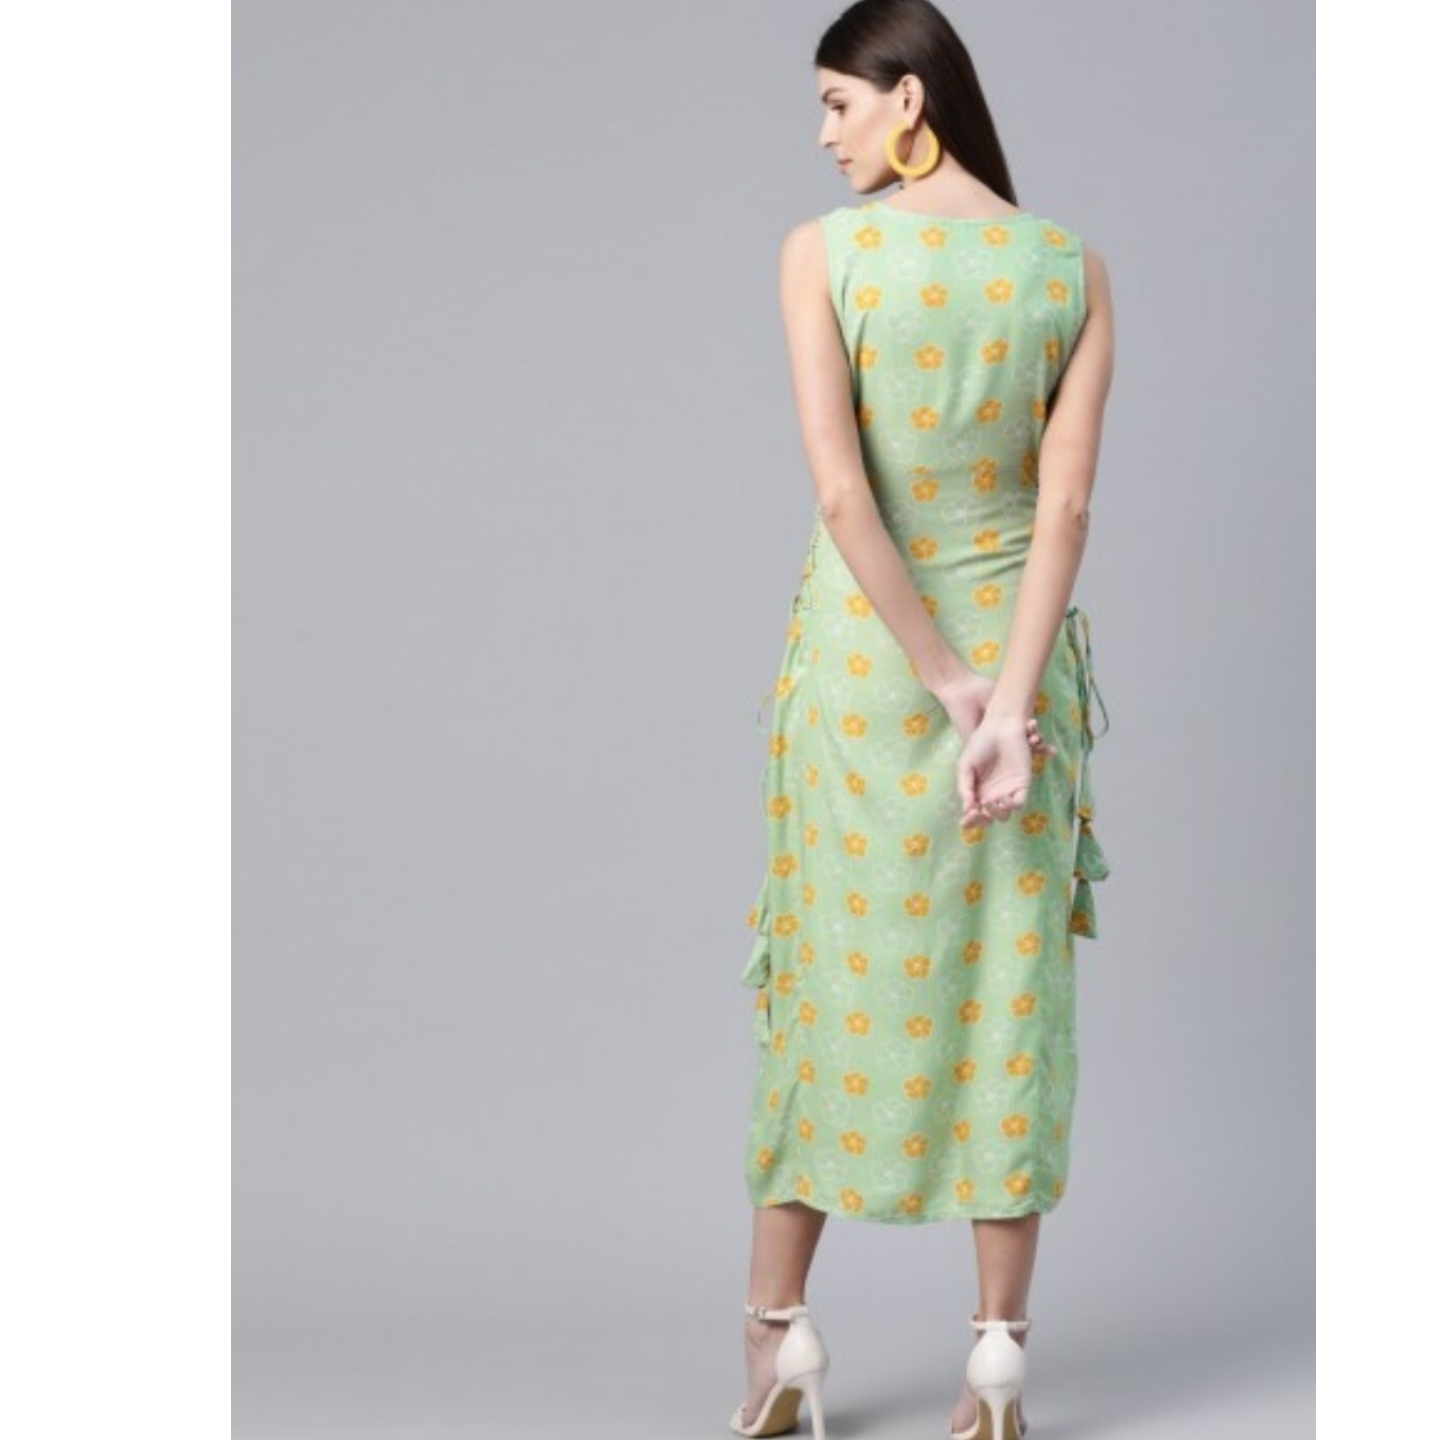 Green & Mustard Yellow Floral Printed A-Line Dress